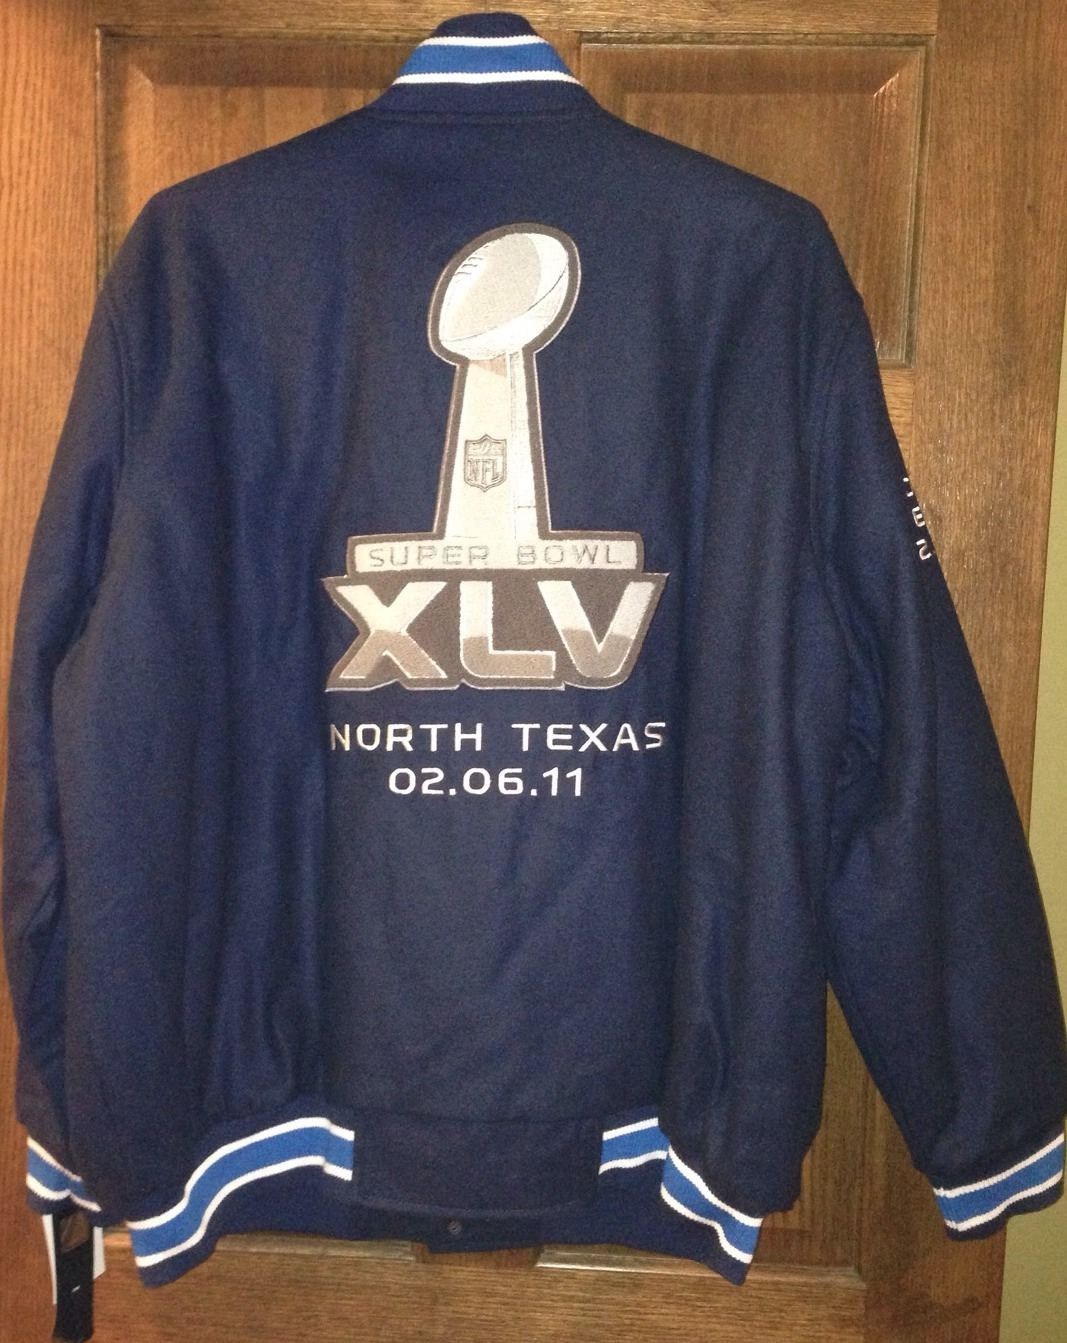 Super Bowl XLV Green Bay Packers Steelers North Texas NFL